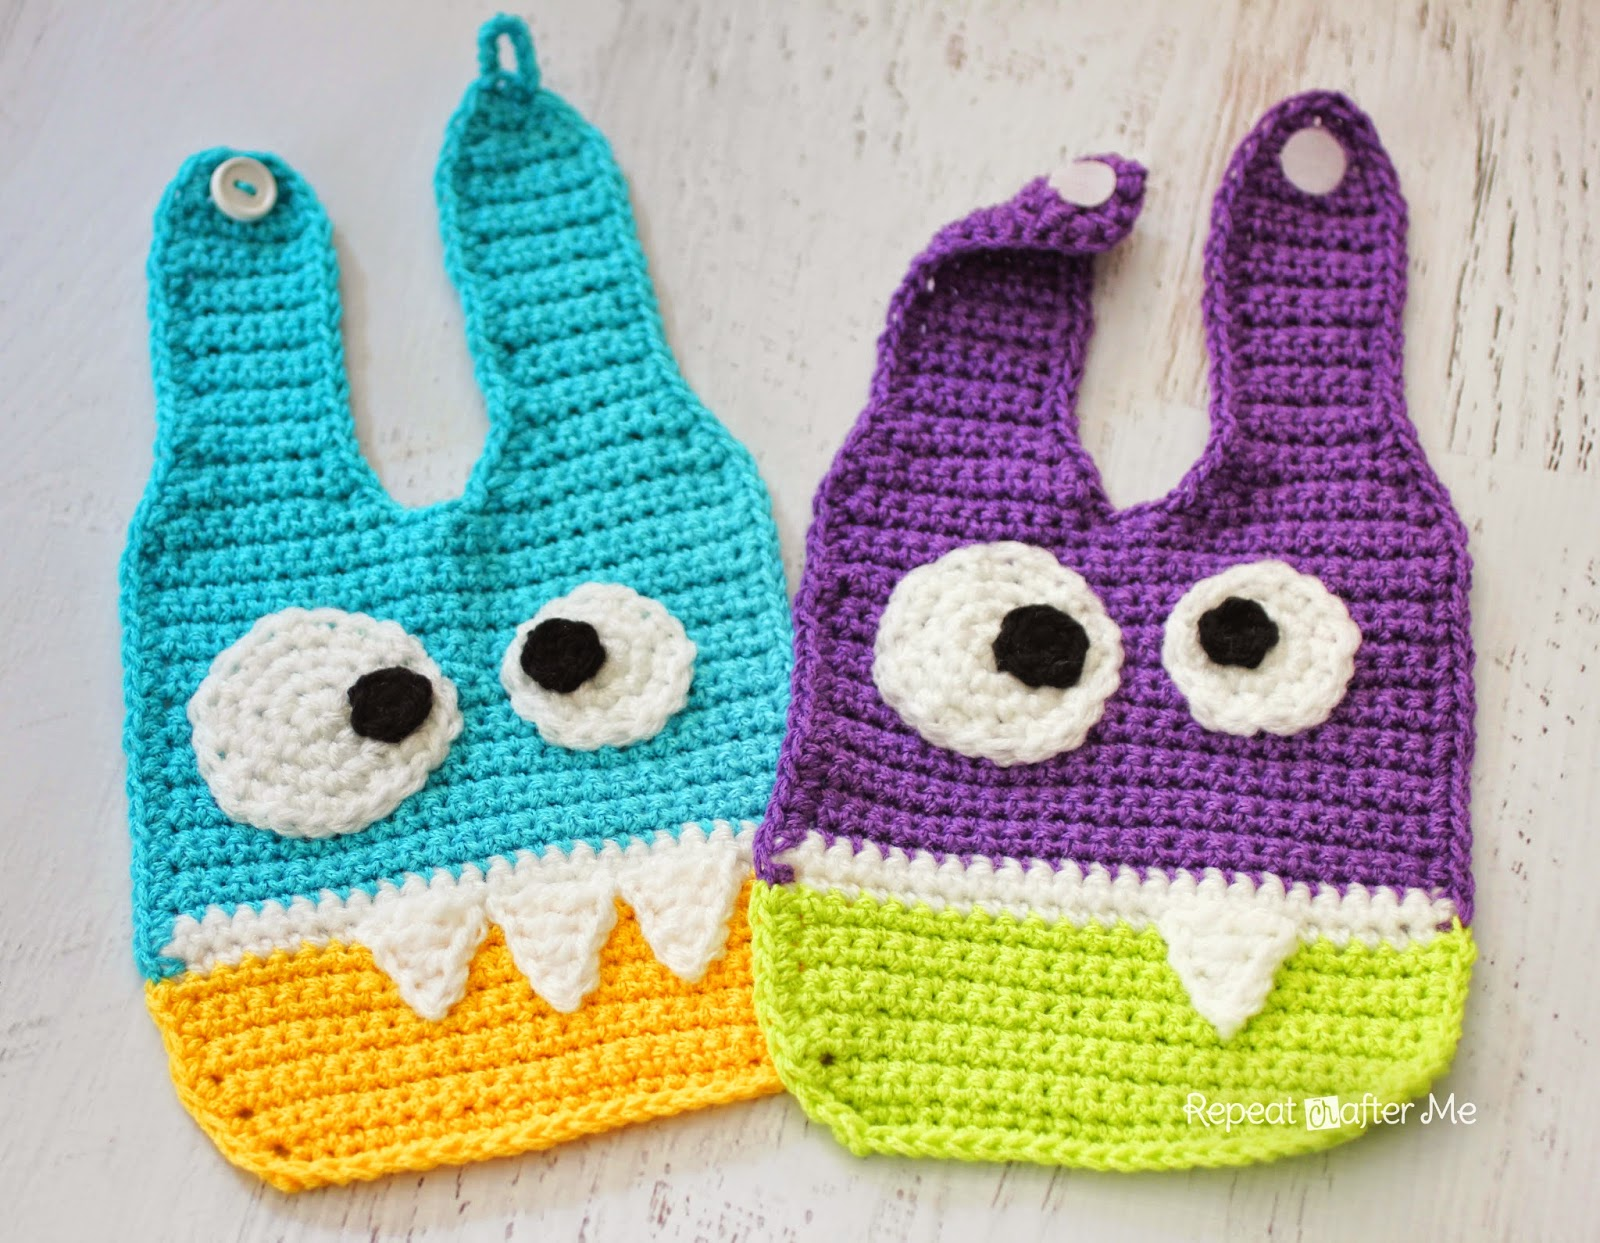 Crochet Baby Bib Patterns : Crochet Baby Bibs Free Patterns images